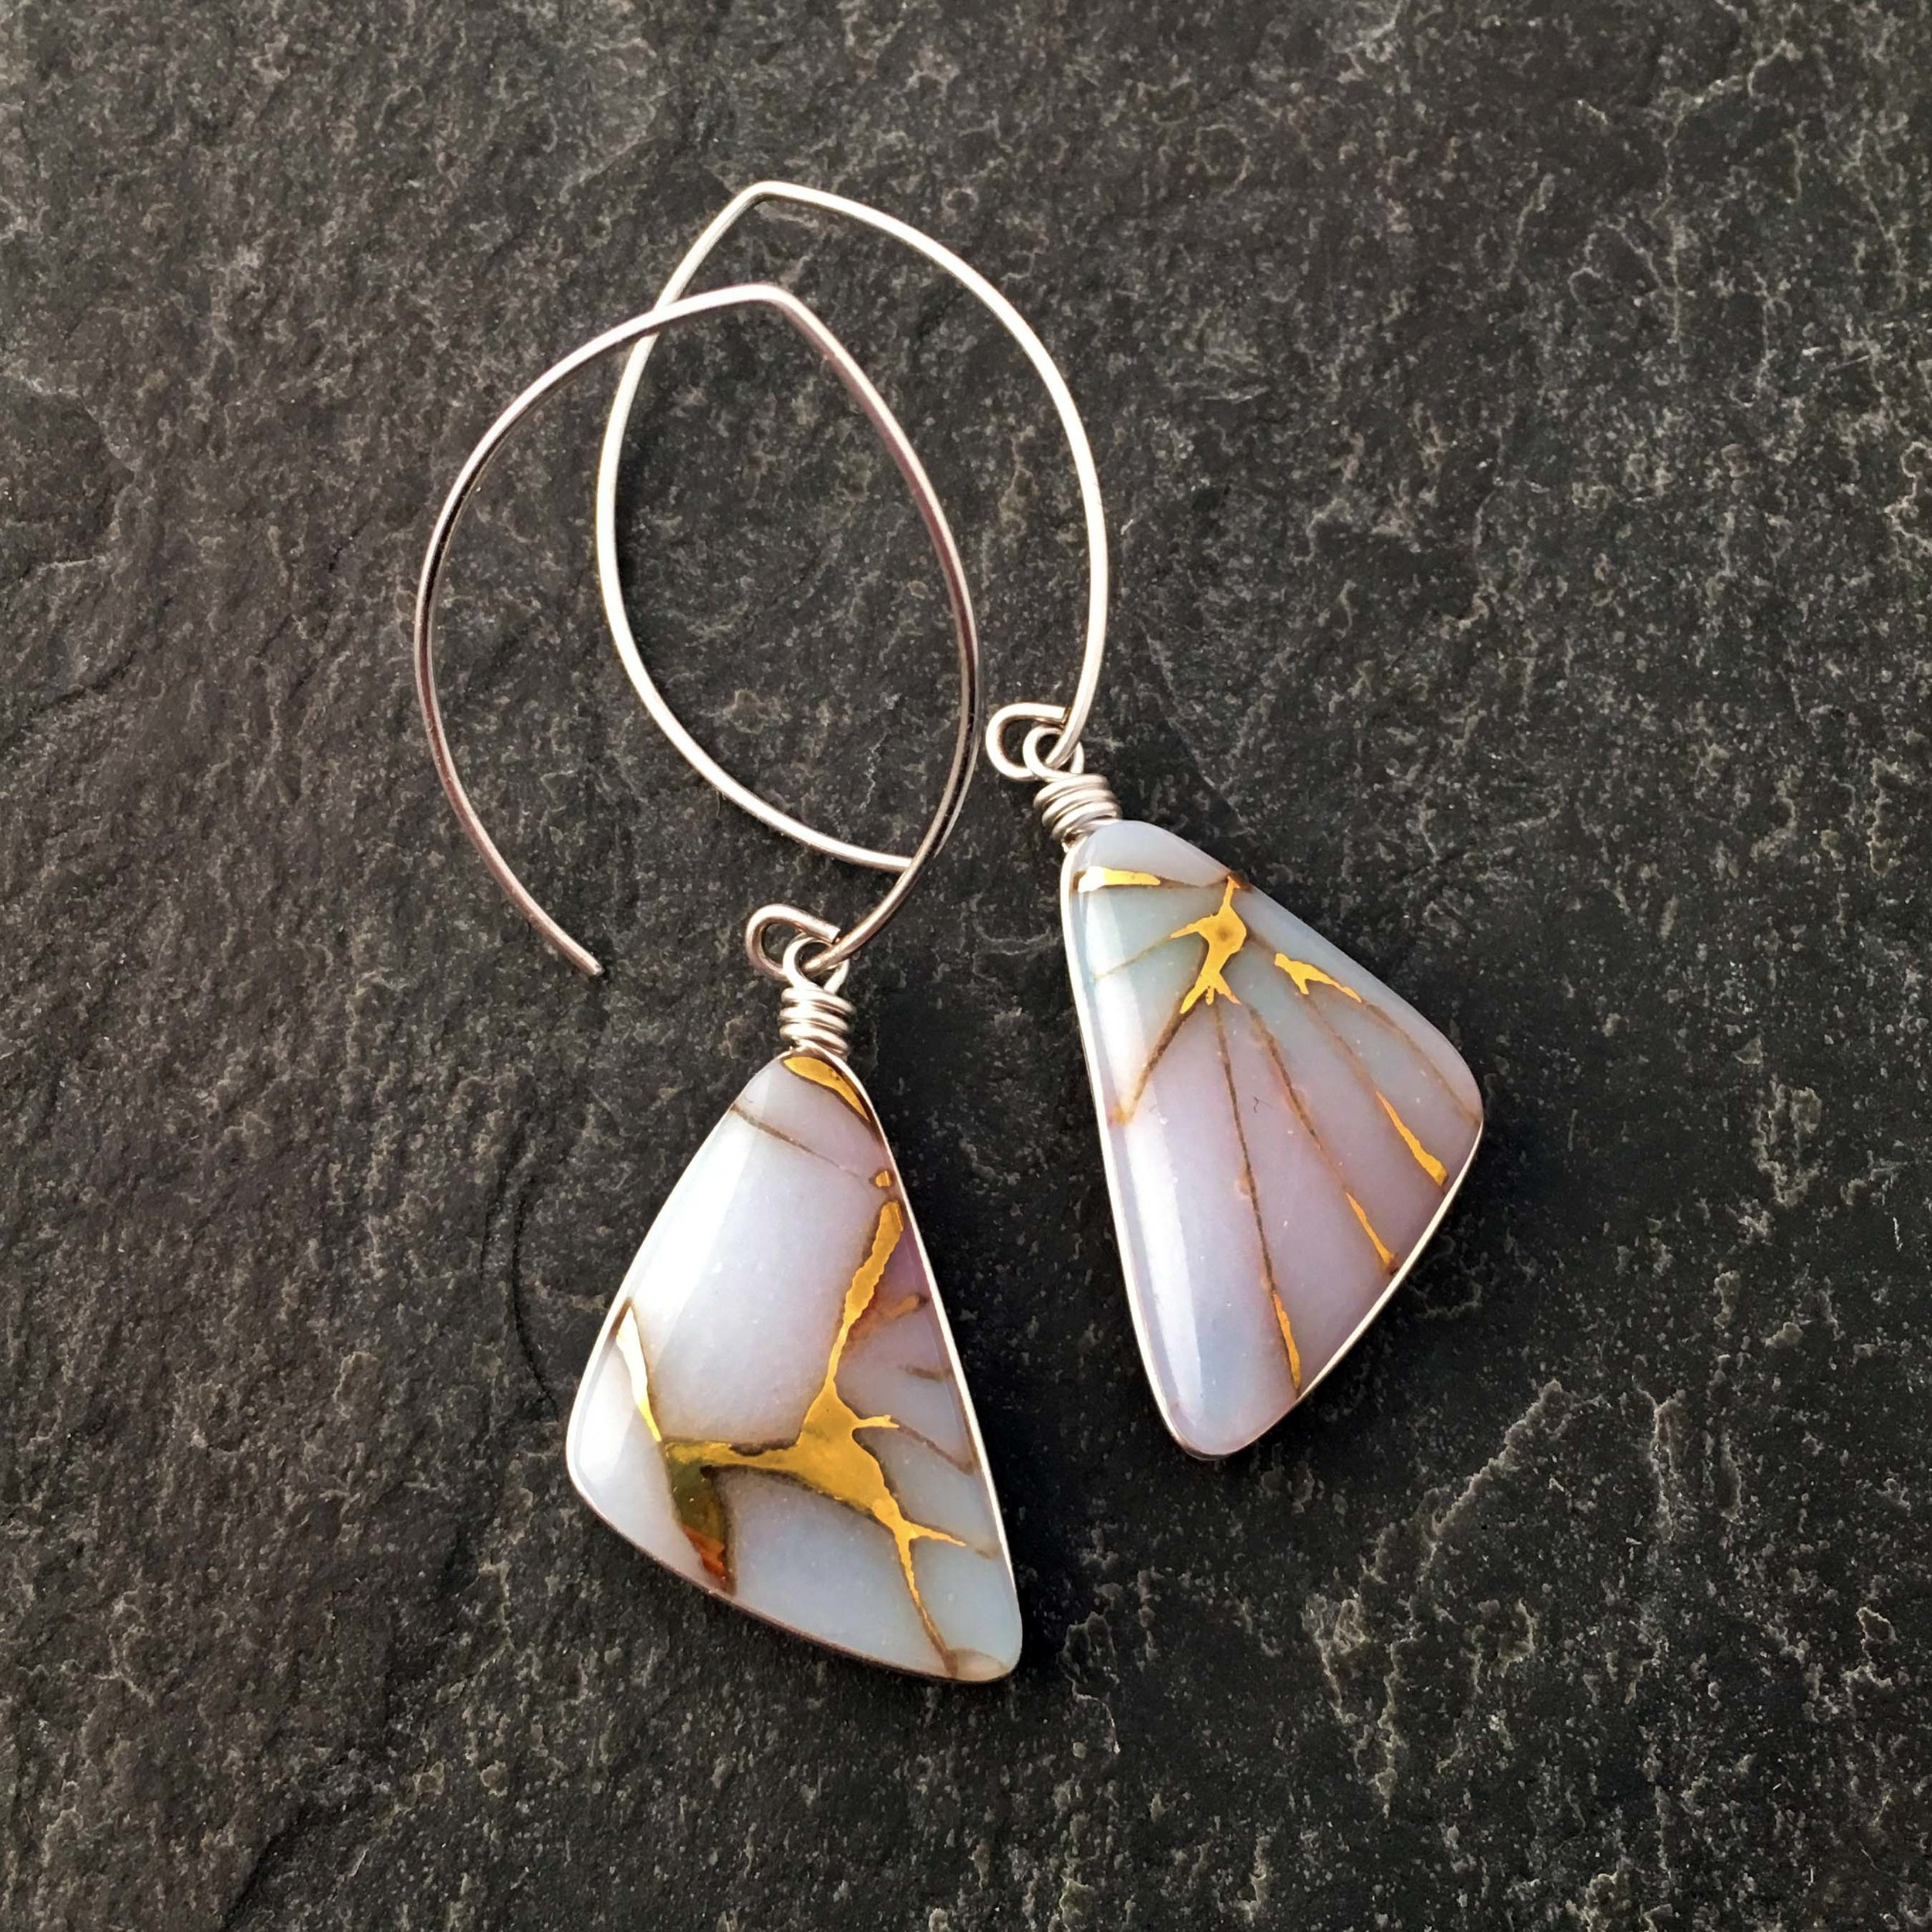 """5. Golden Veins Earrings, kiln formed art glass, .75"""" x 2.25"""" x .25"""", Earrings, painted with gold luster, Argentium sterling silver wire setting and ear wires, $67.00."""